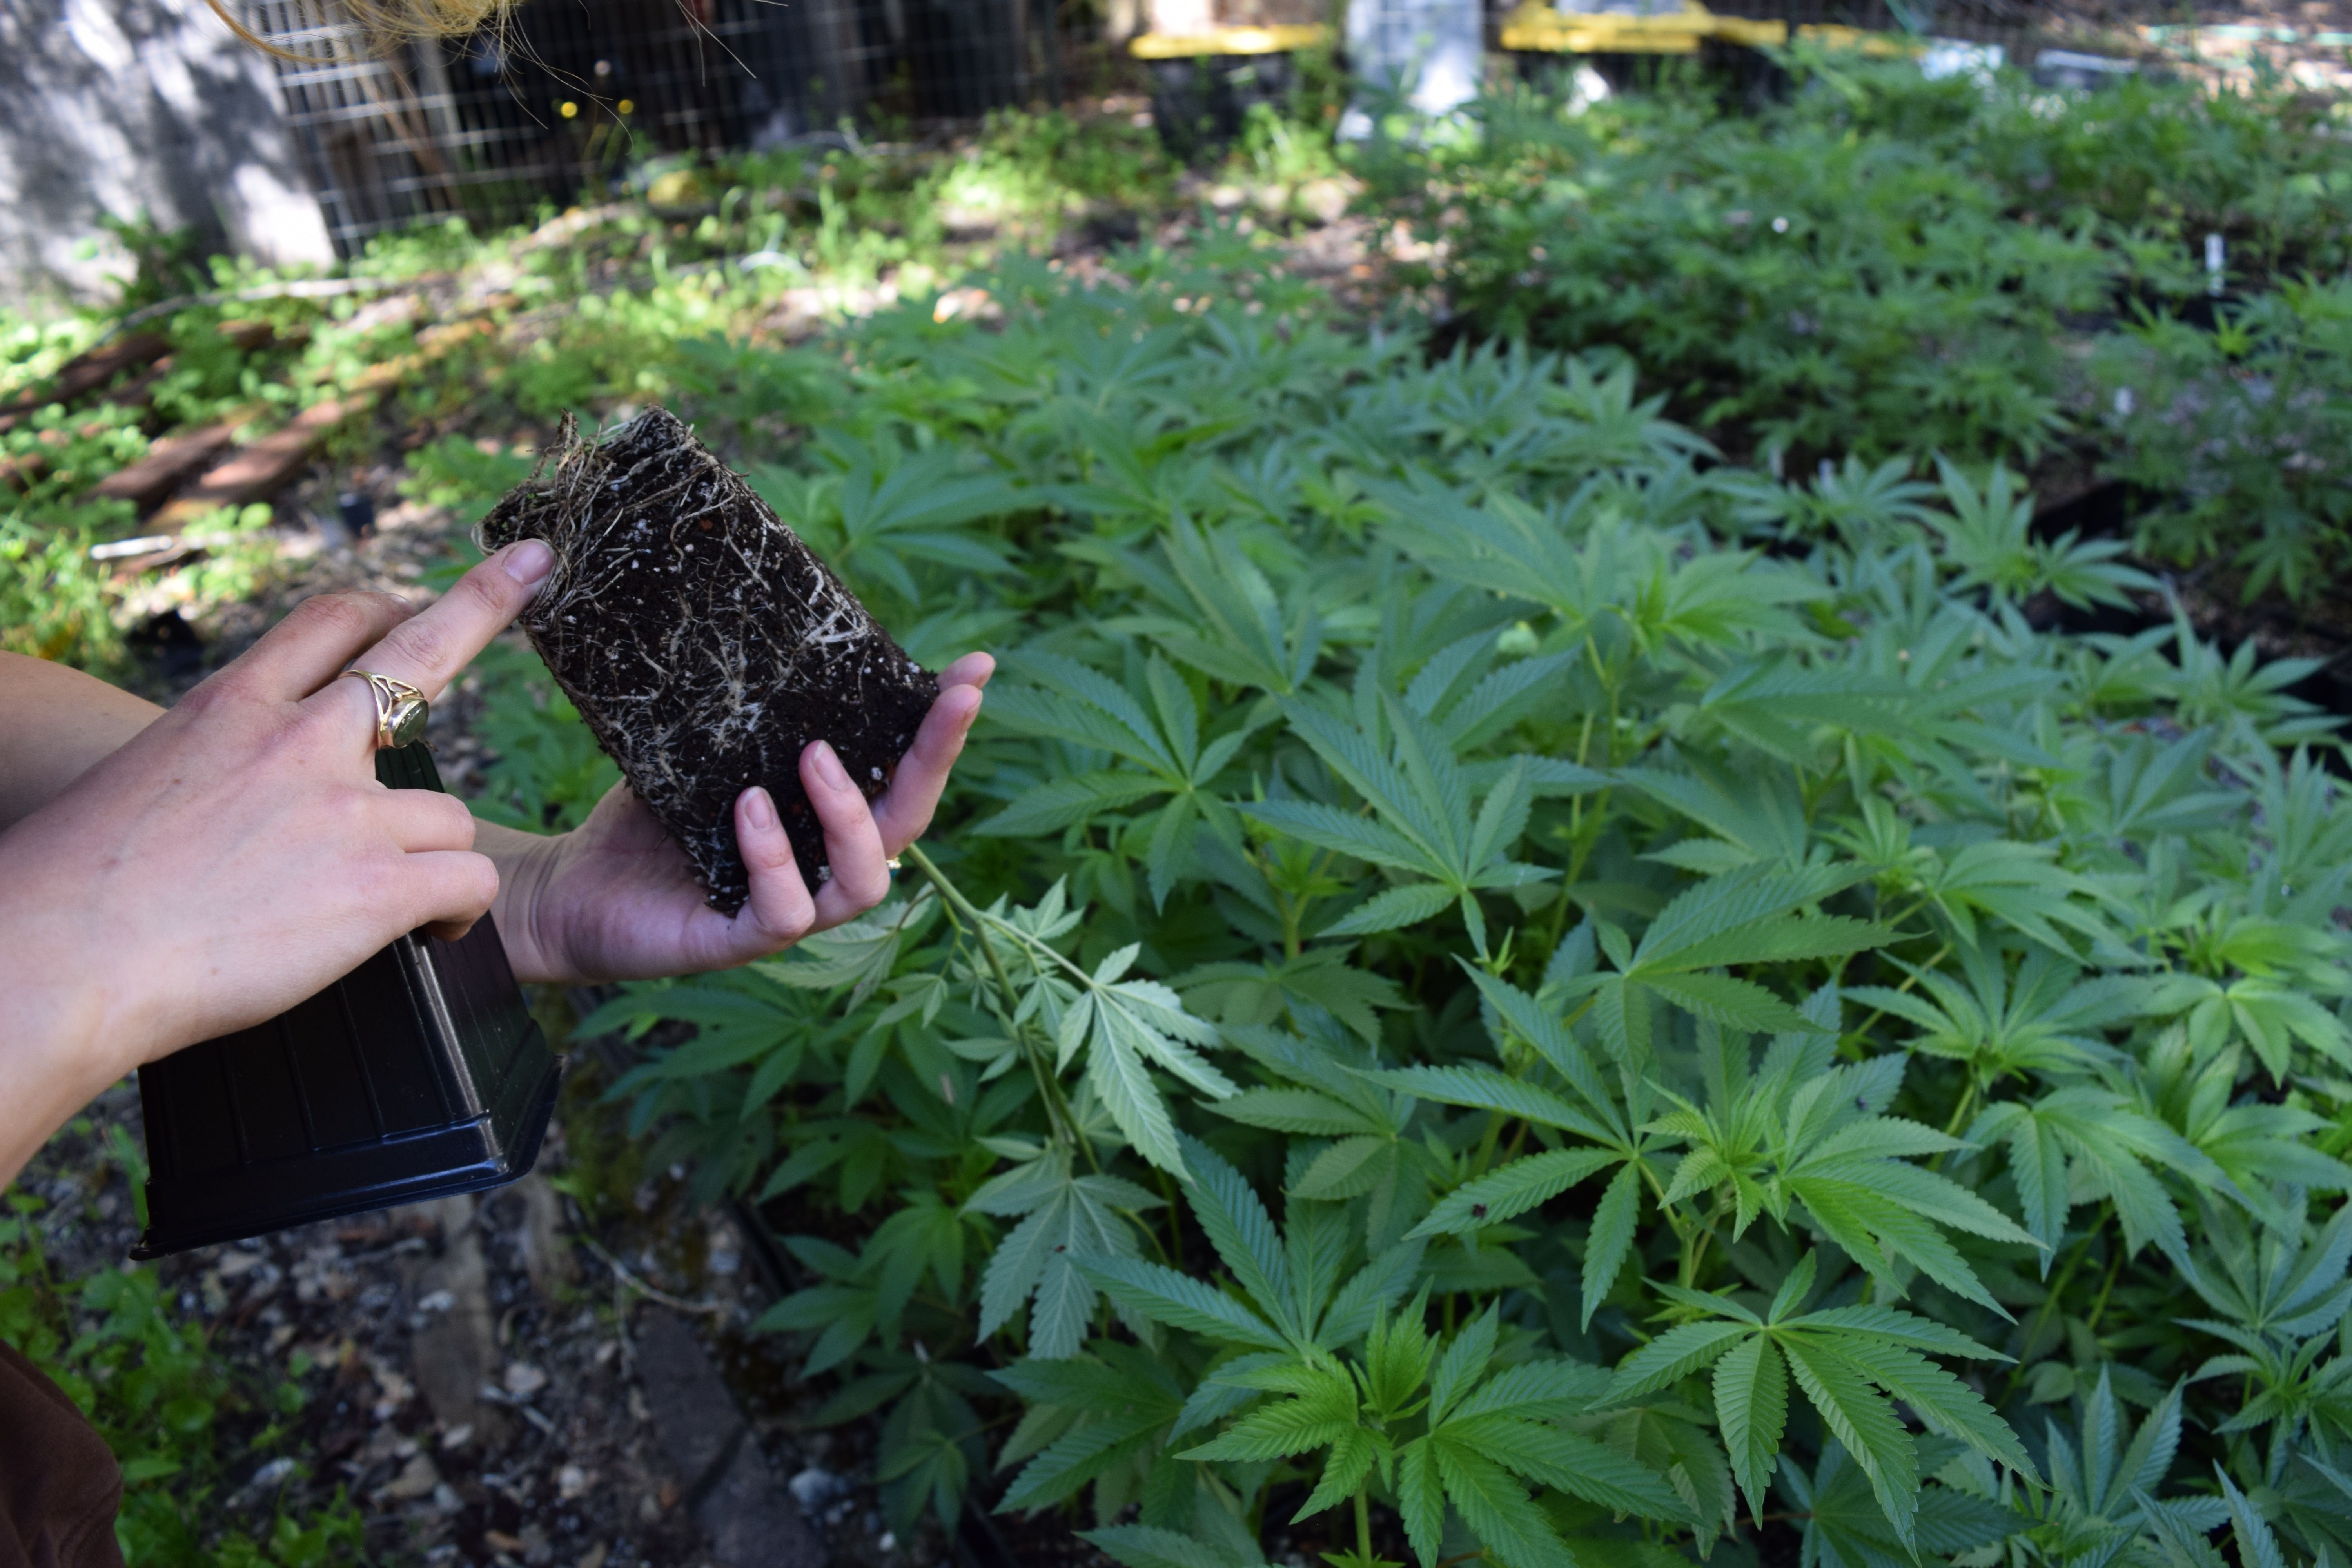 Encouraging marijuana cultivators to grow outdoors will require changes to land use laws and local permitting processes in California that so far have been unfriendly to marijuana growers.